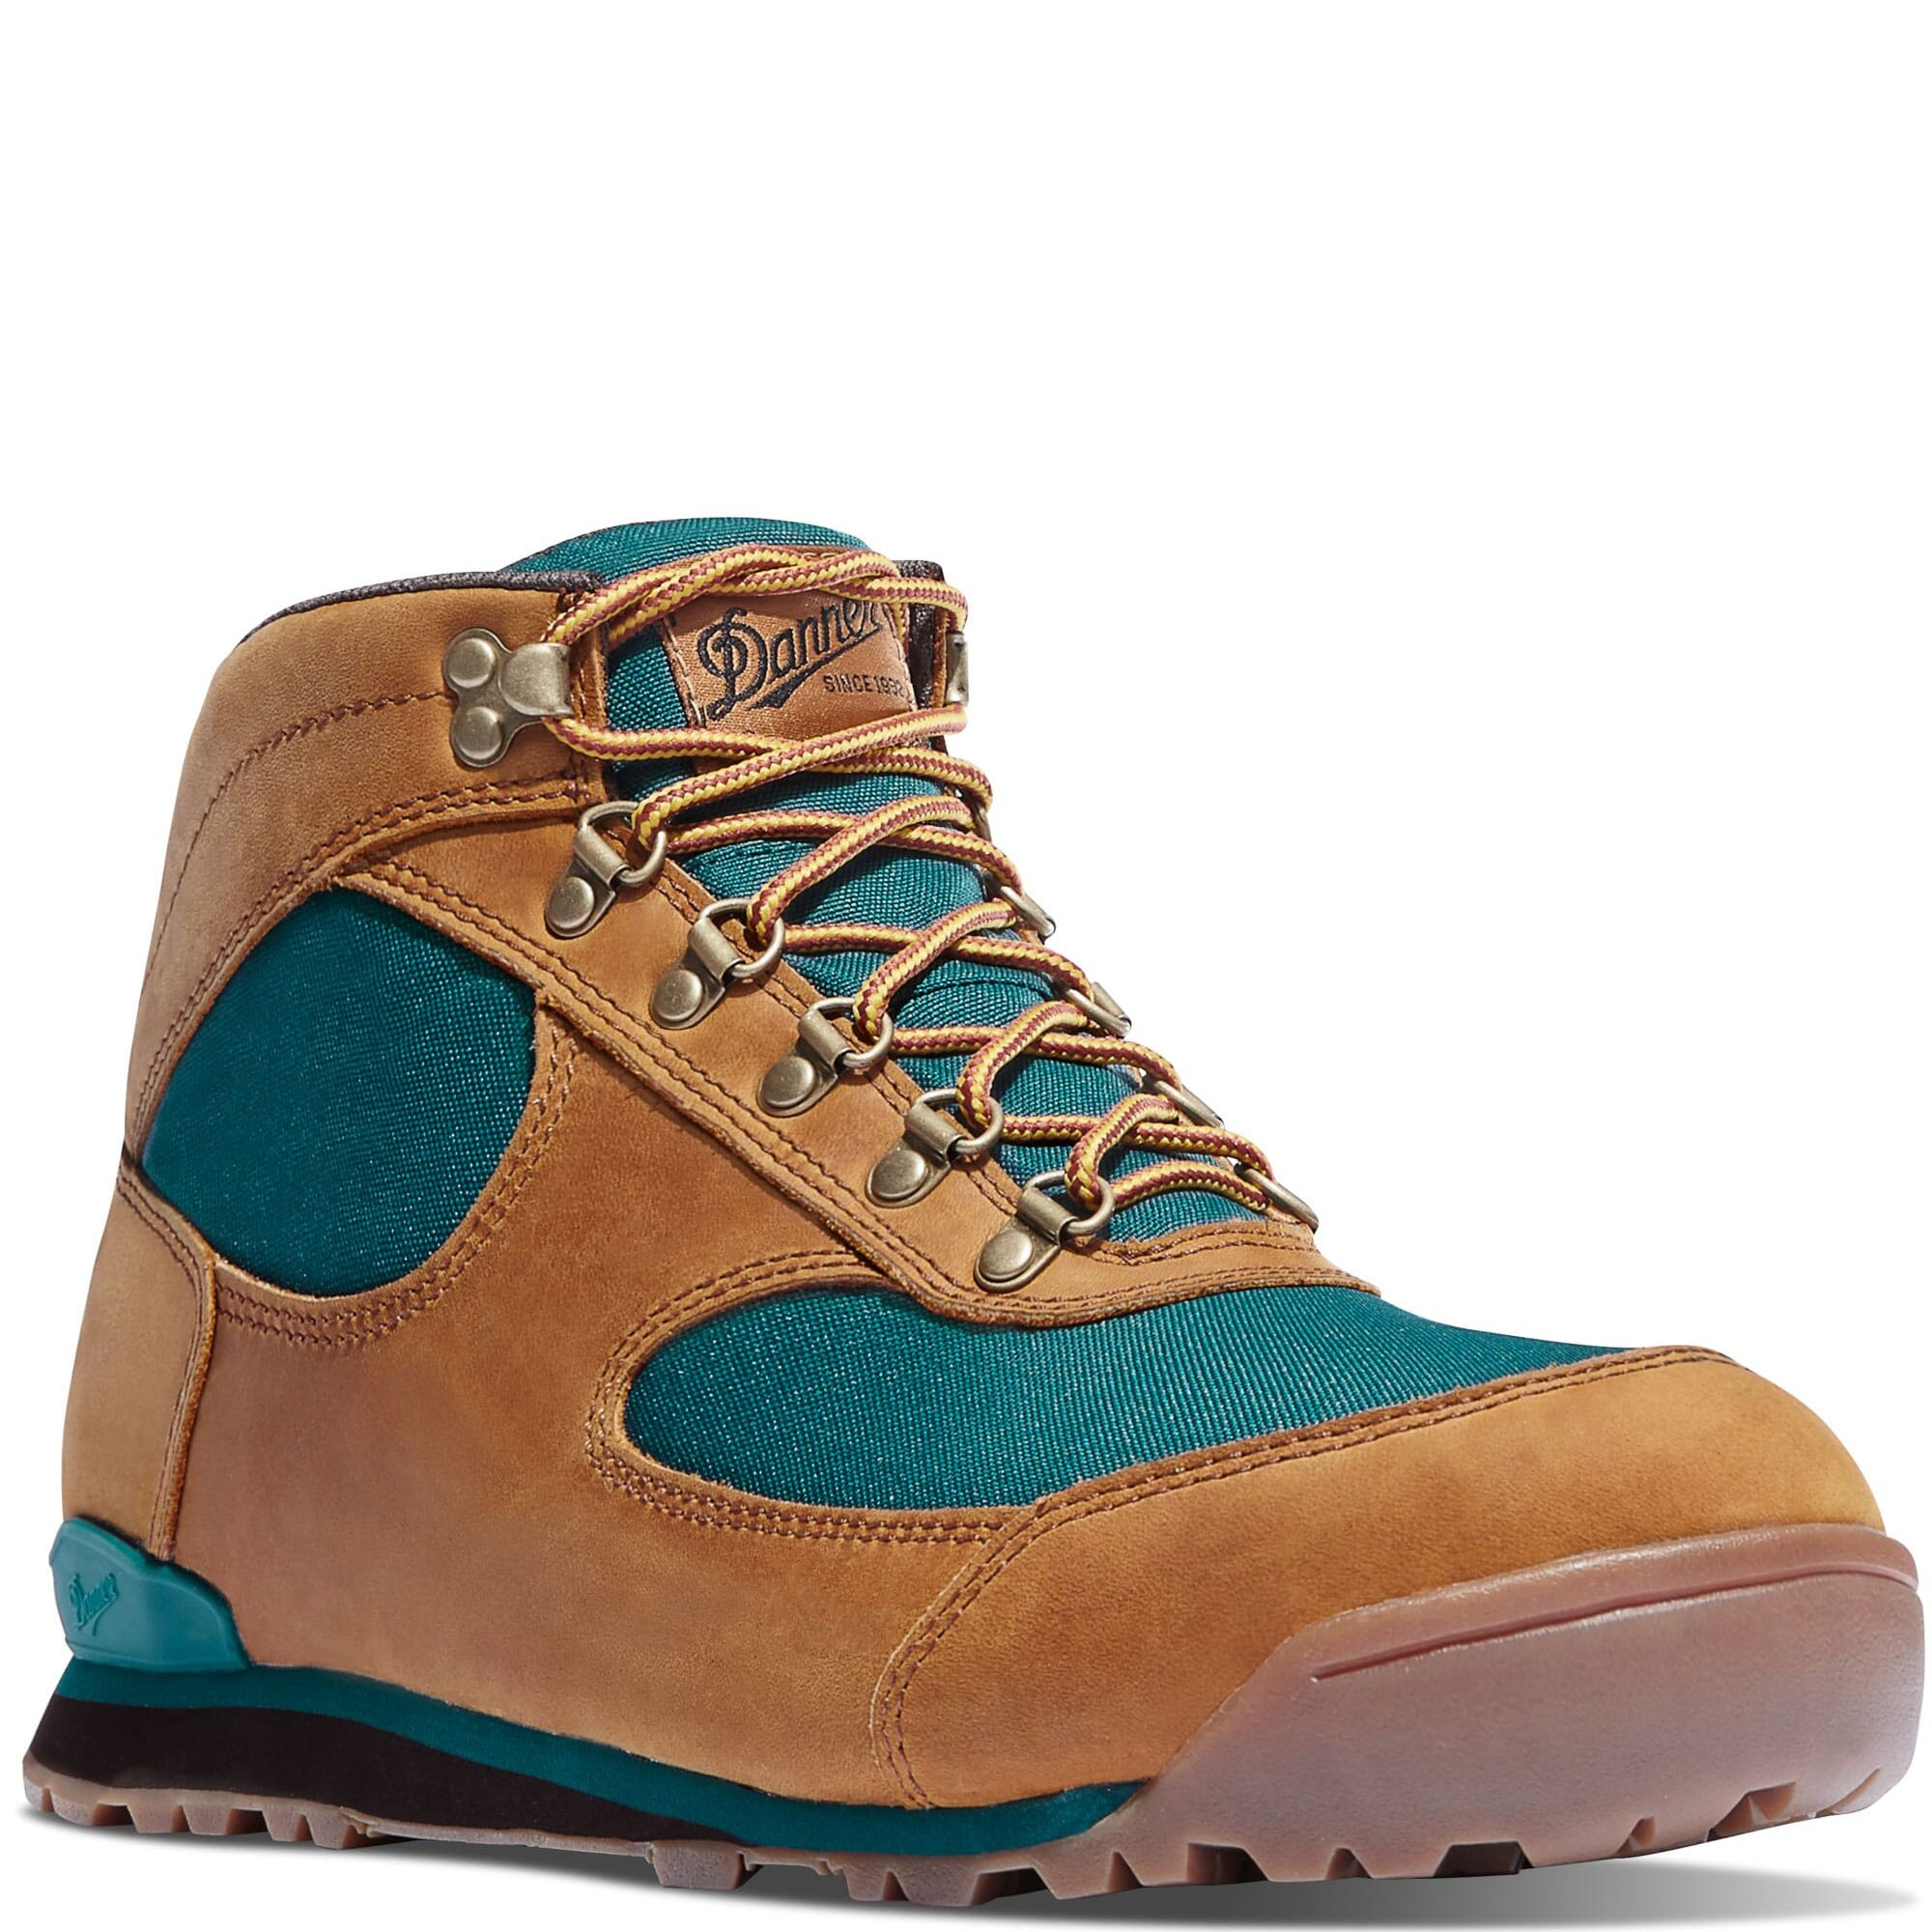 Image for Danner Women's Jag Hiking Boots - Distressed Brown/Deep Teal from elliottsboots